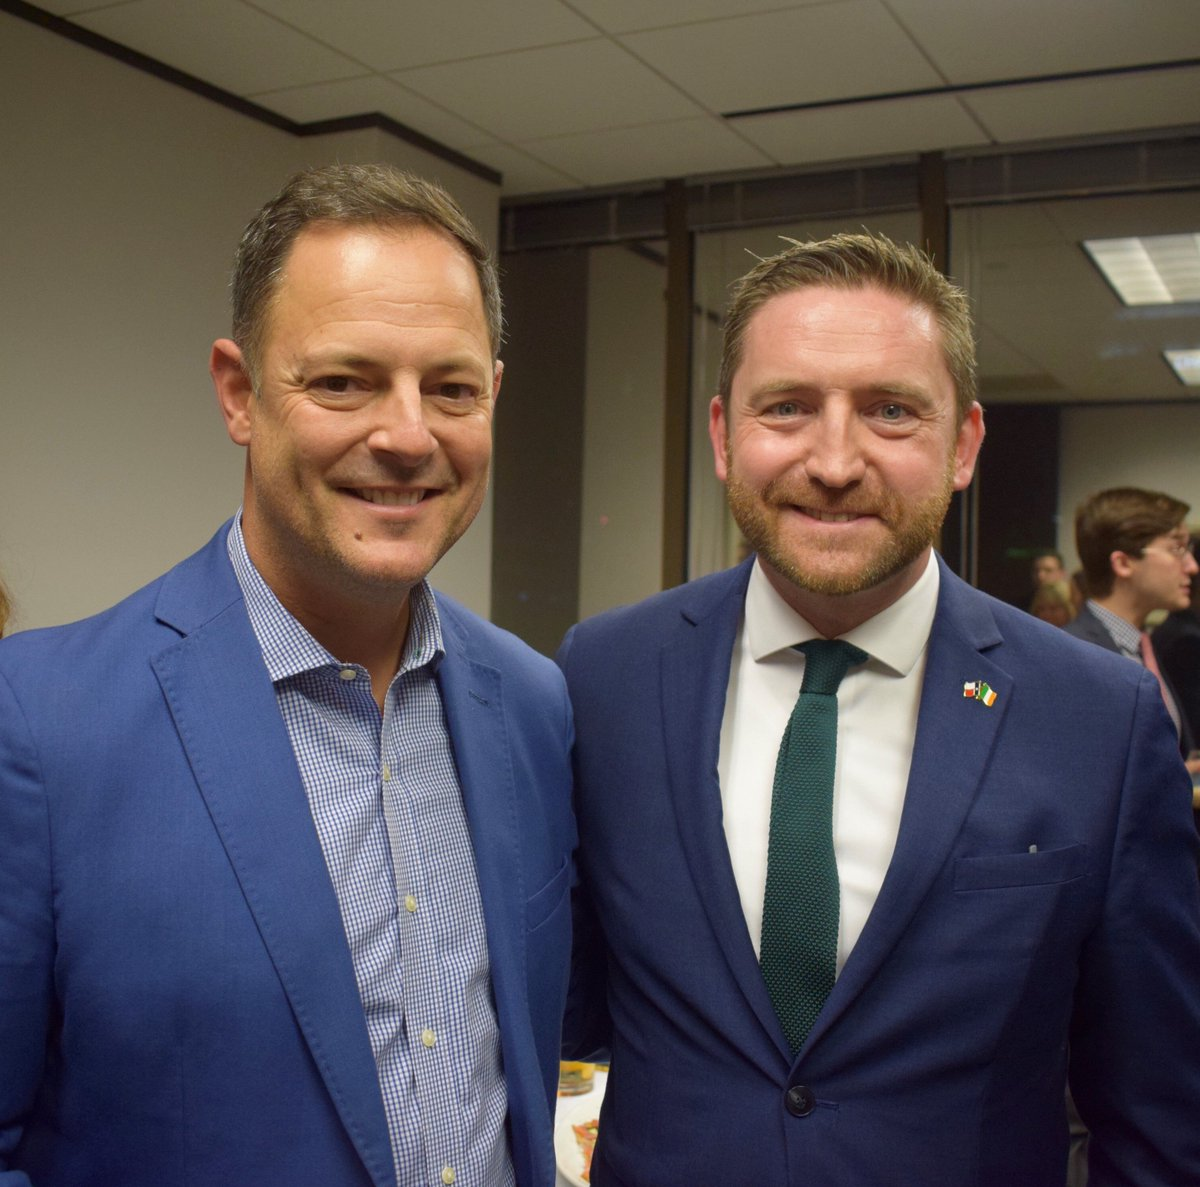 Congratulations Representative @RafaelAnchia - new Chairman of the TX House International Affairs Committee.  Looking forward to working with Committee to support stronger links between TX and Ireland/EU.  #TXlege #Working4IRL